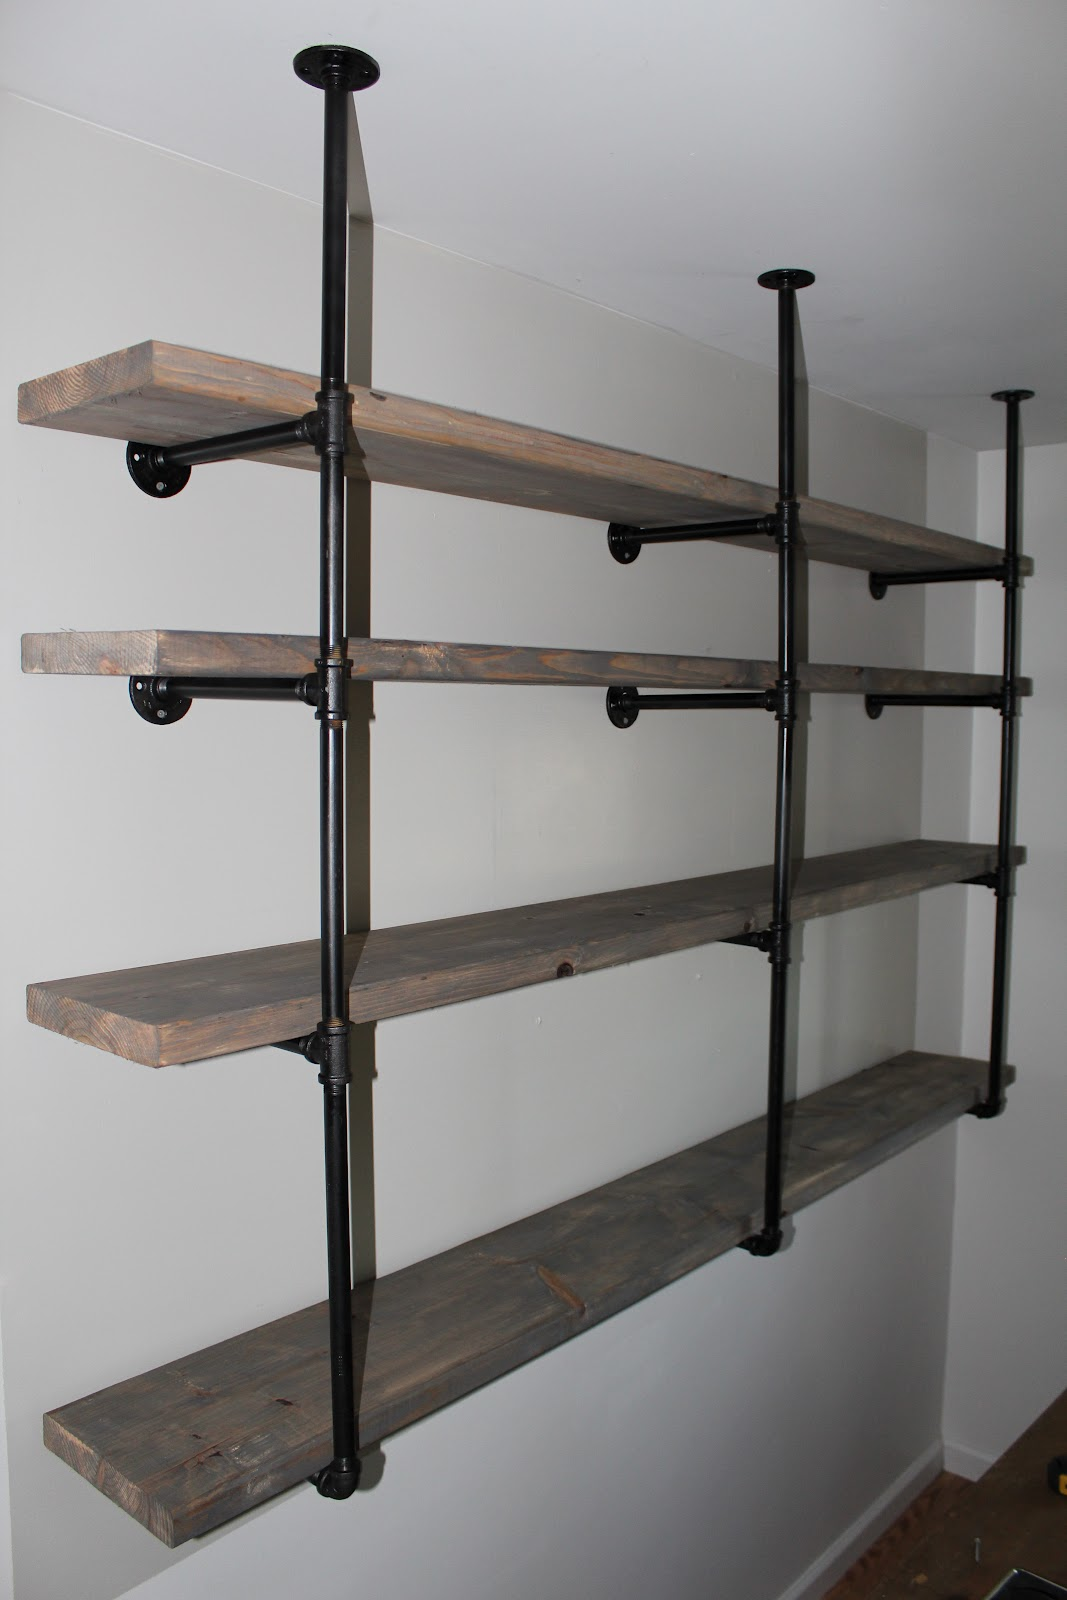 Bookshelves Using Pipes Reclaimed Wood Kitchen Shelves - Viewing Gallery